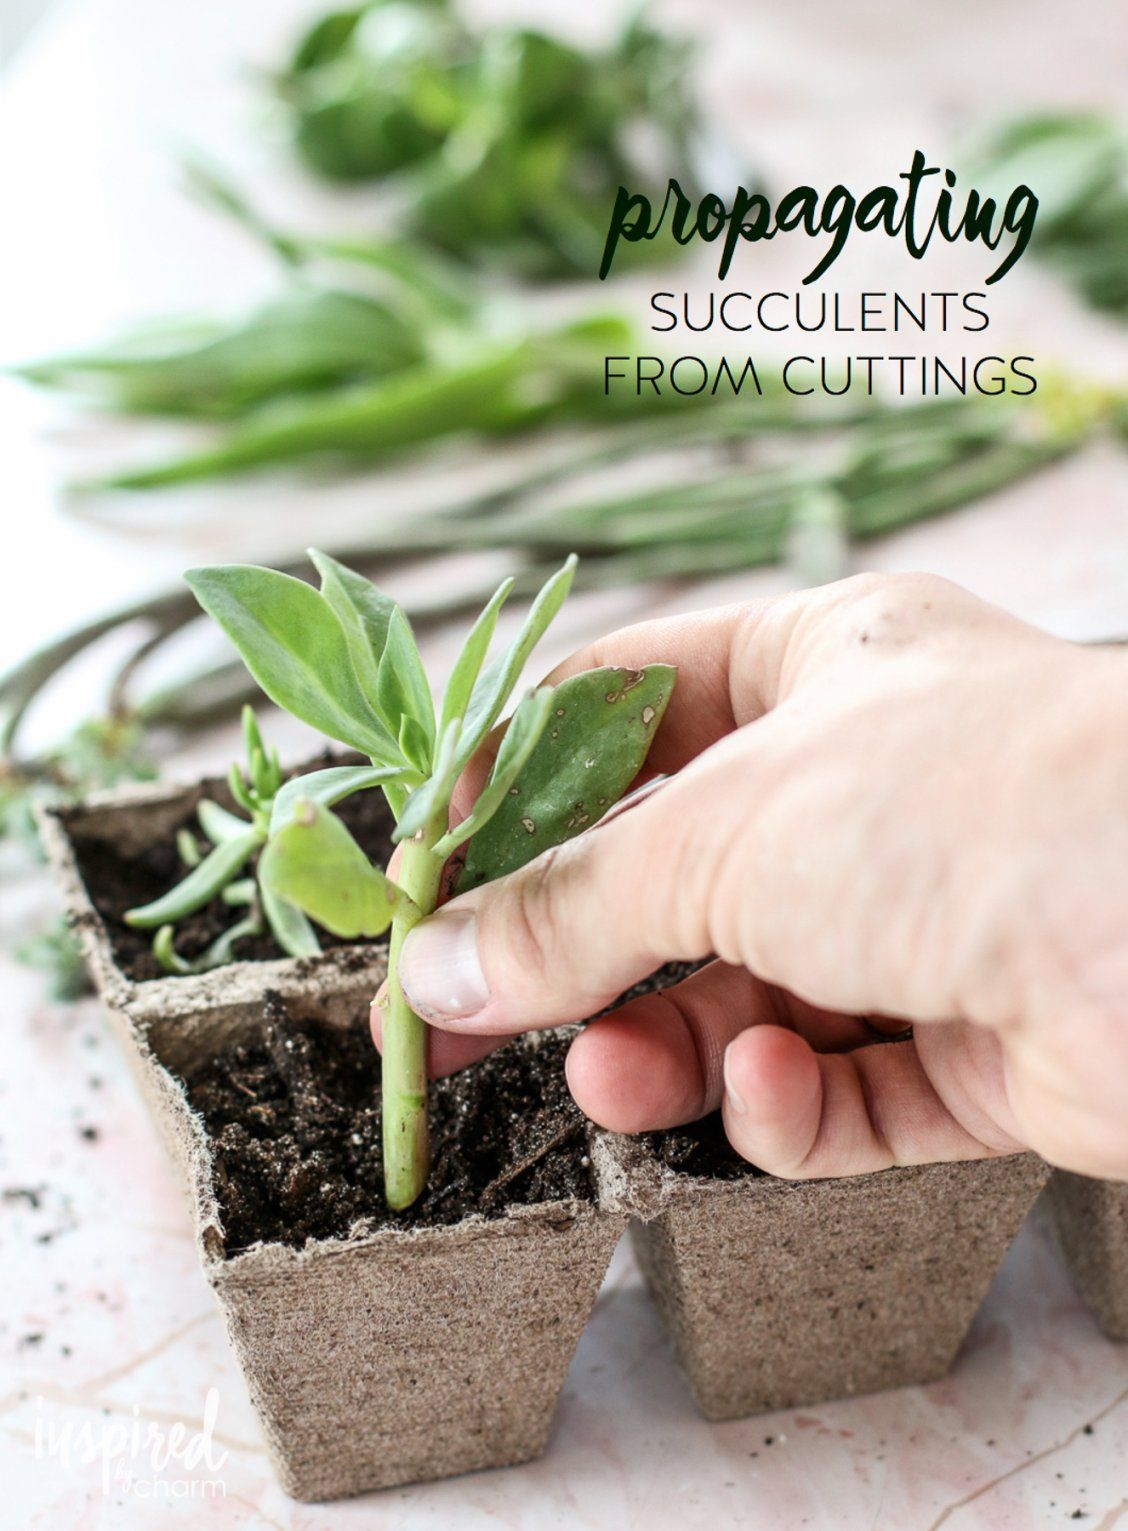 Succulent Propagation Inspired by Charm Propagating